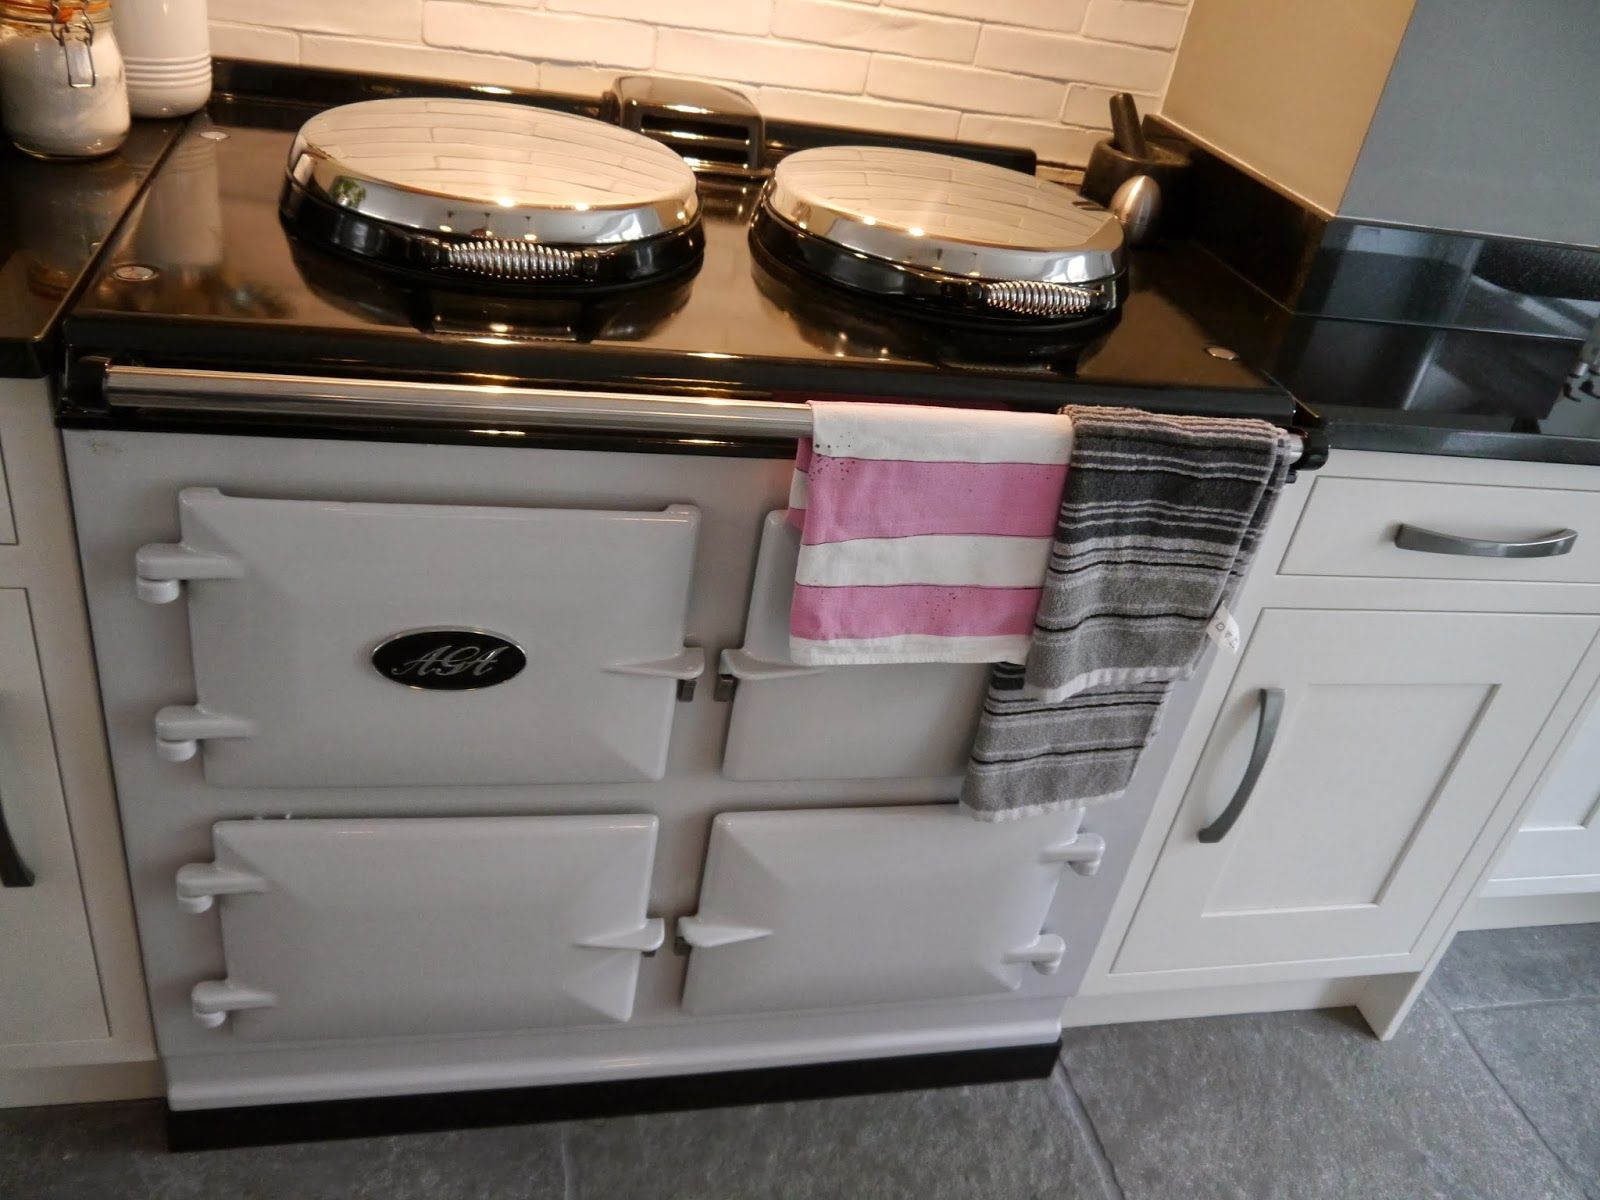 Aga Kitchen Appliances Aga In Pearl Ashes Aga Stove Pinterest Aga Ash And Pearls